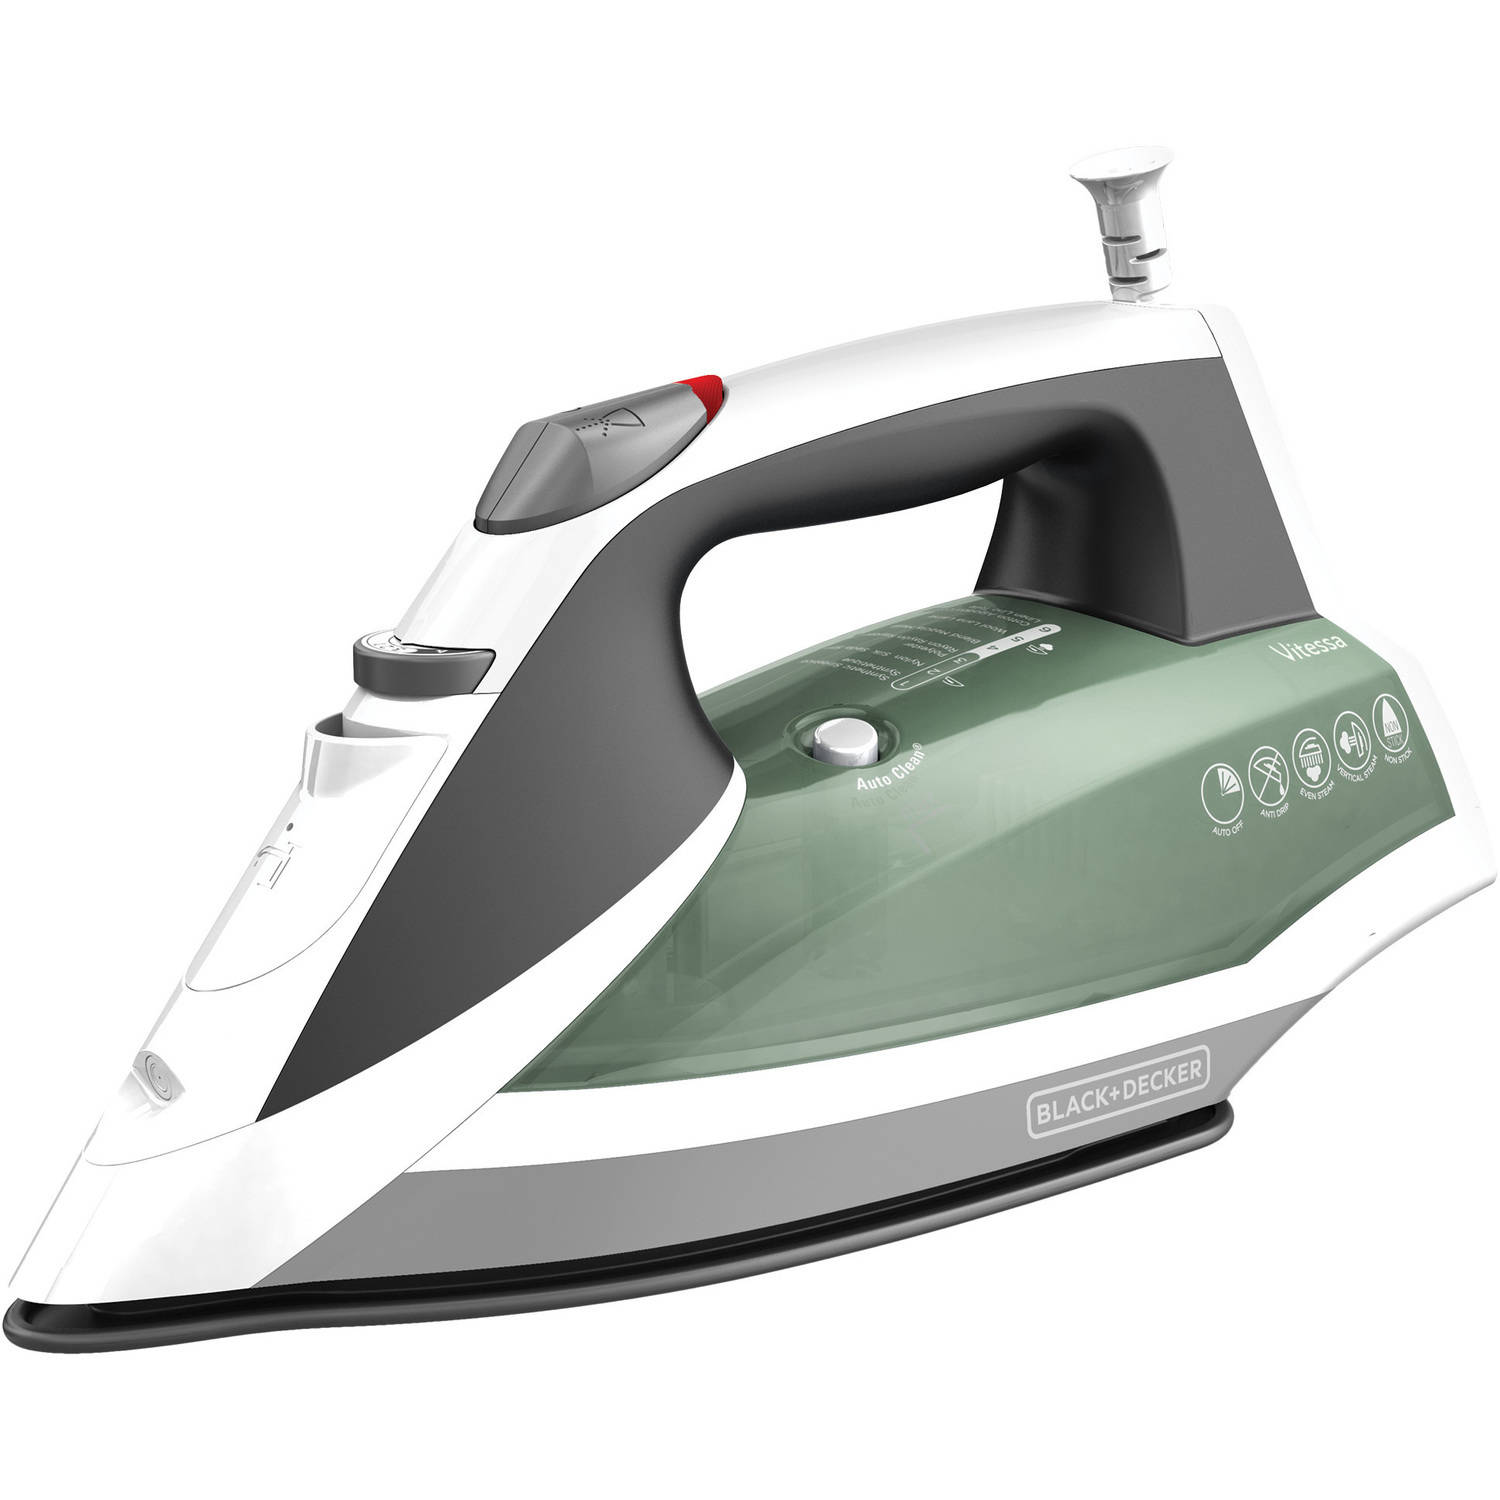 Black & Decker Vitessa Advanced Steam Iron, Nonstick Soleplate